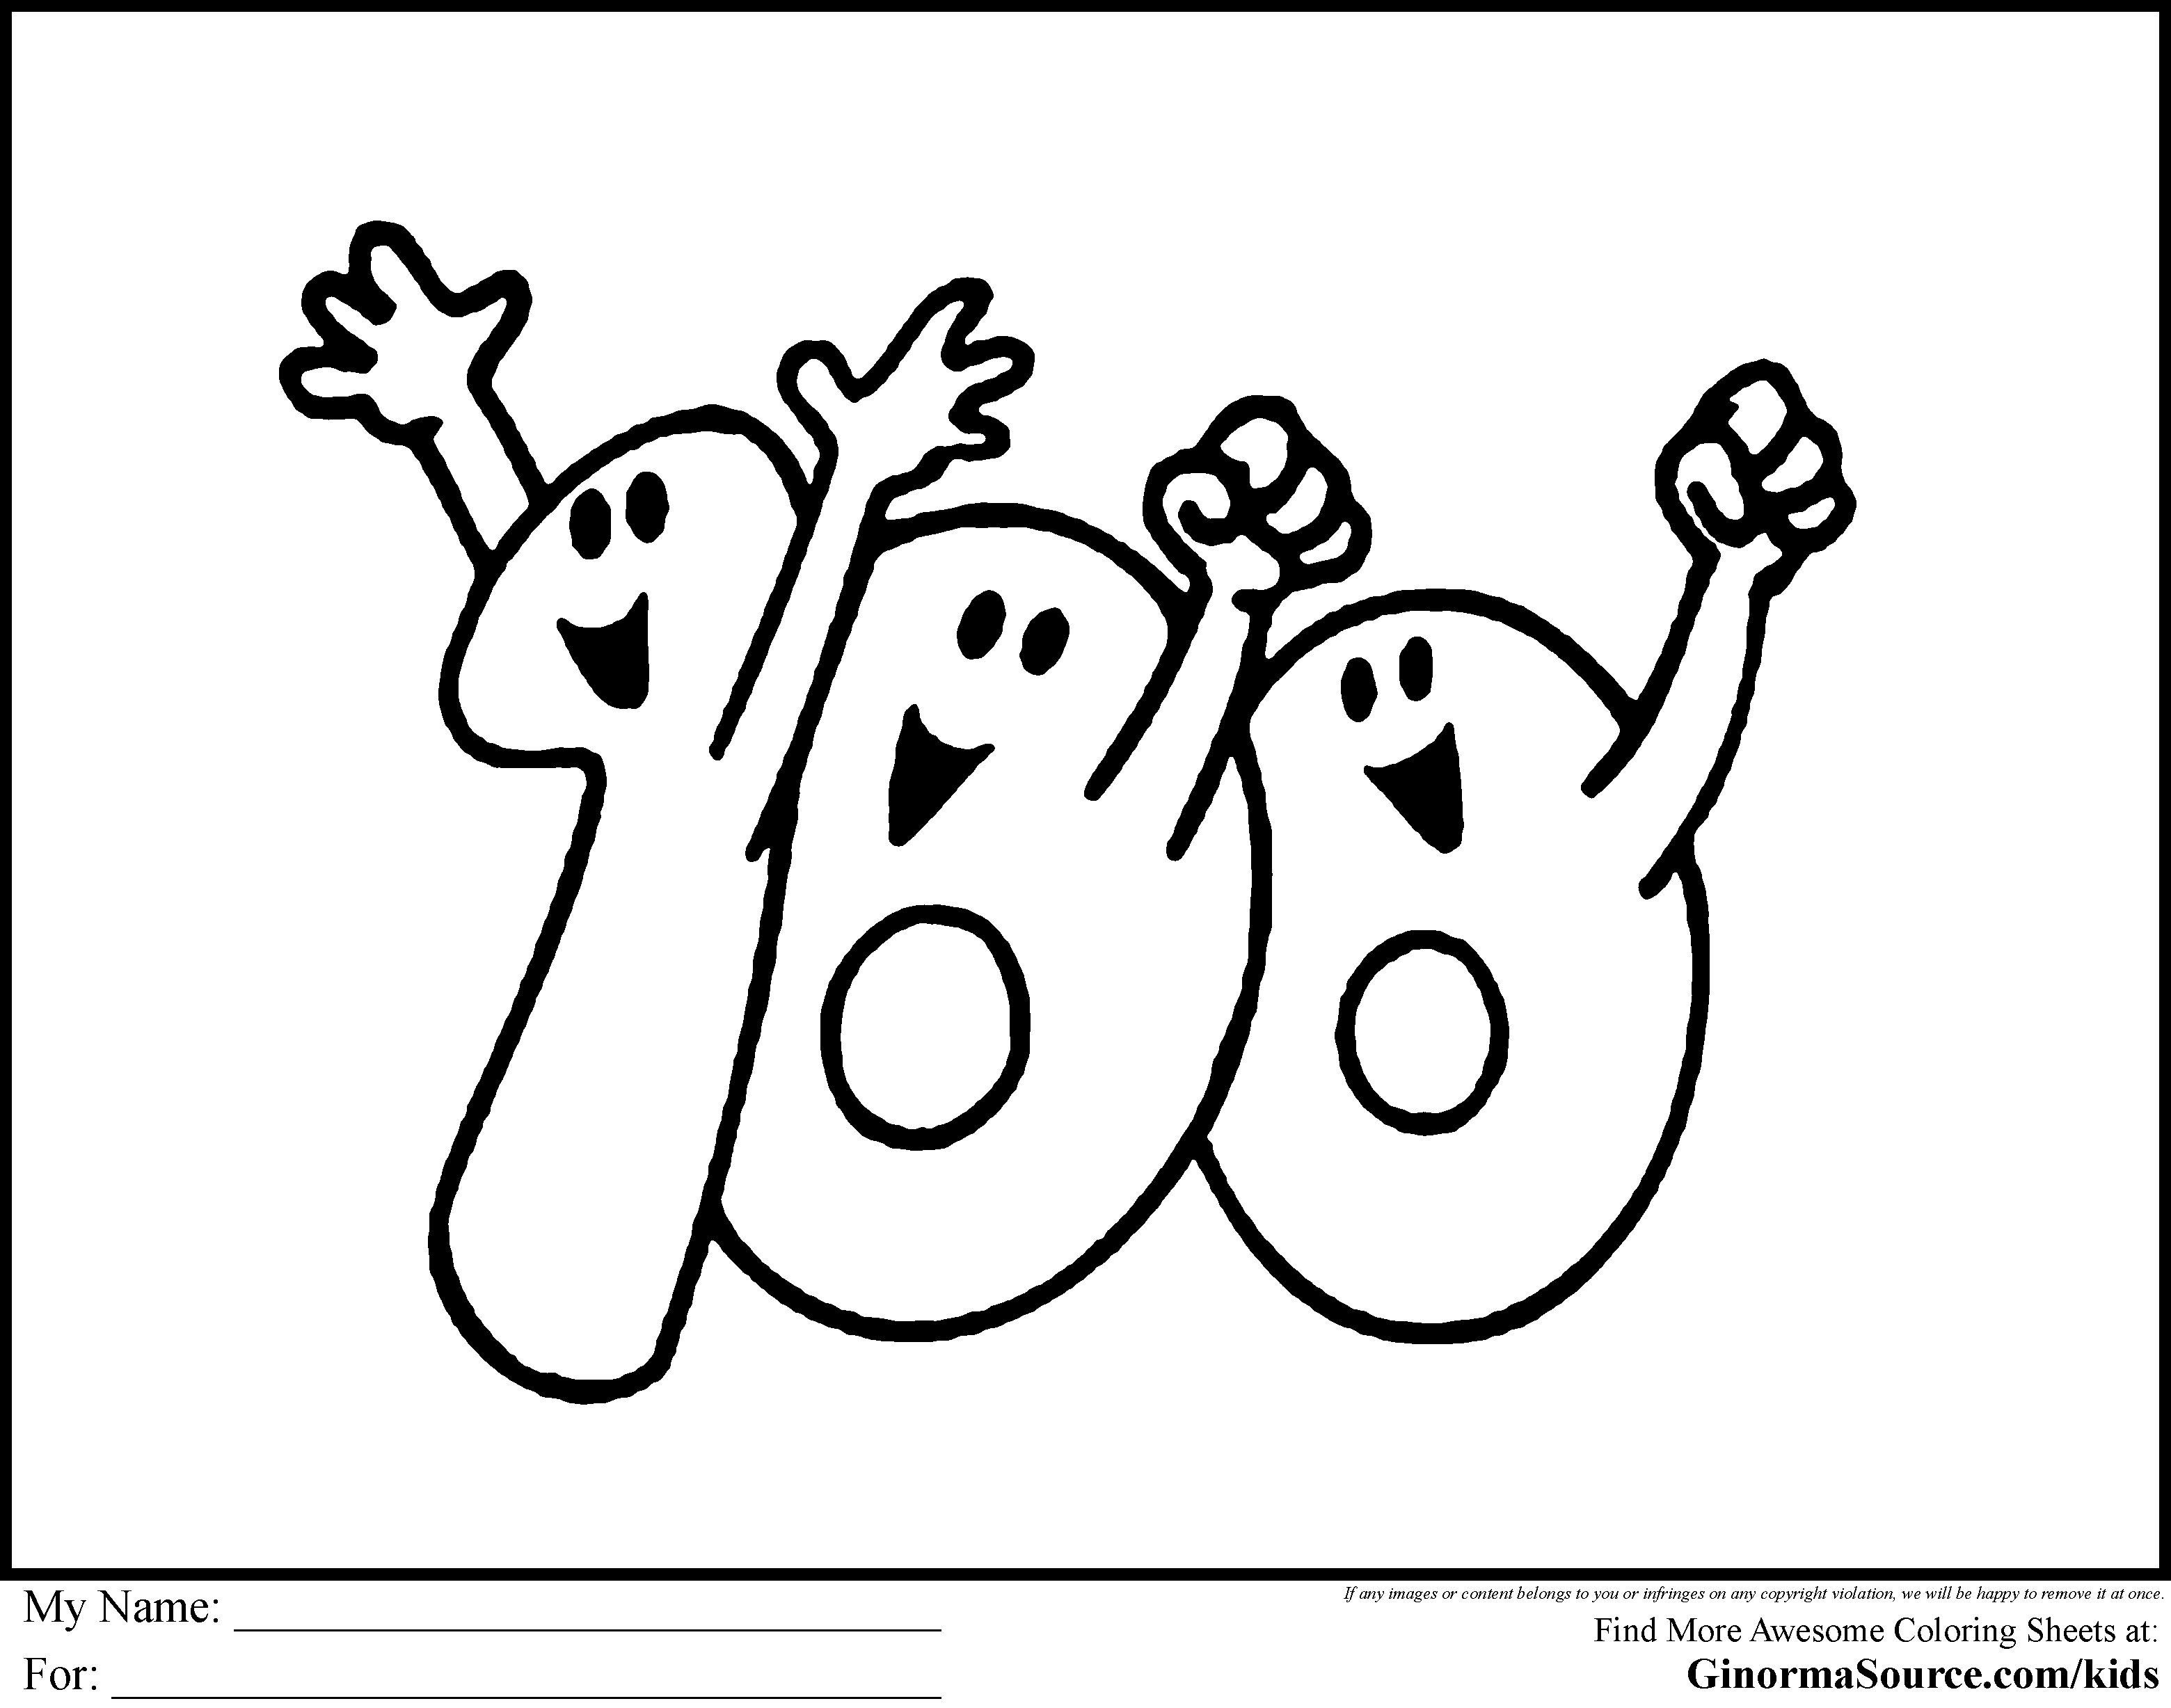 cool 100 day coloring pages - GINORMAsource Kids | Mcoloring | Pinterest